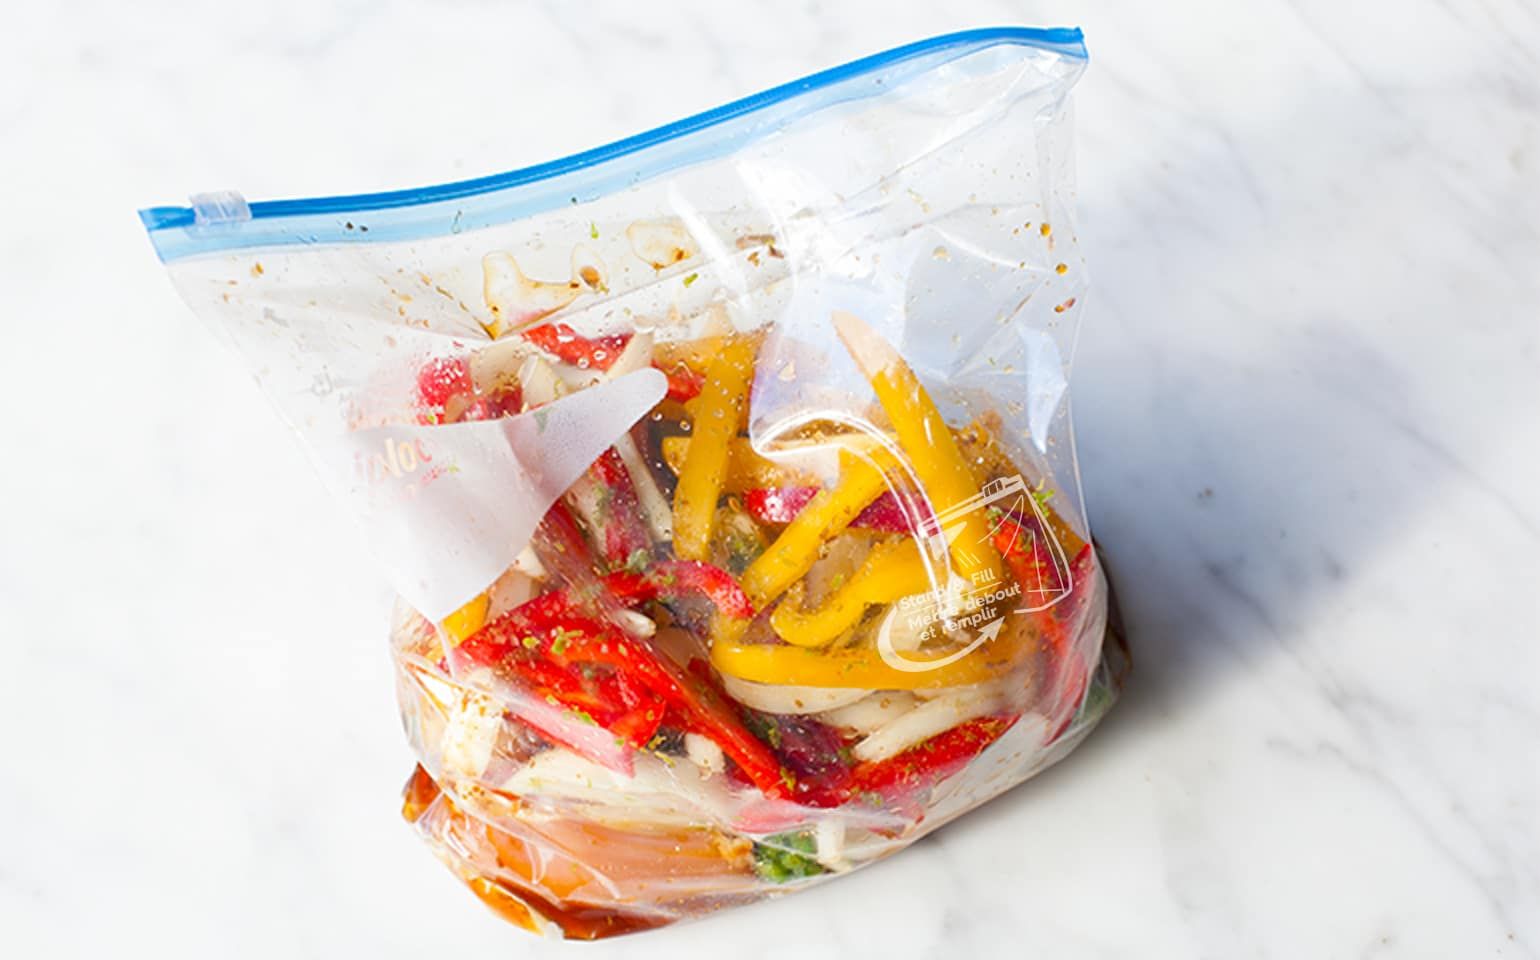 Can you microwave Ziploc bags?